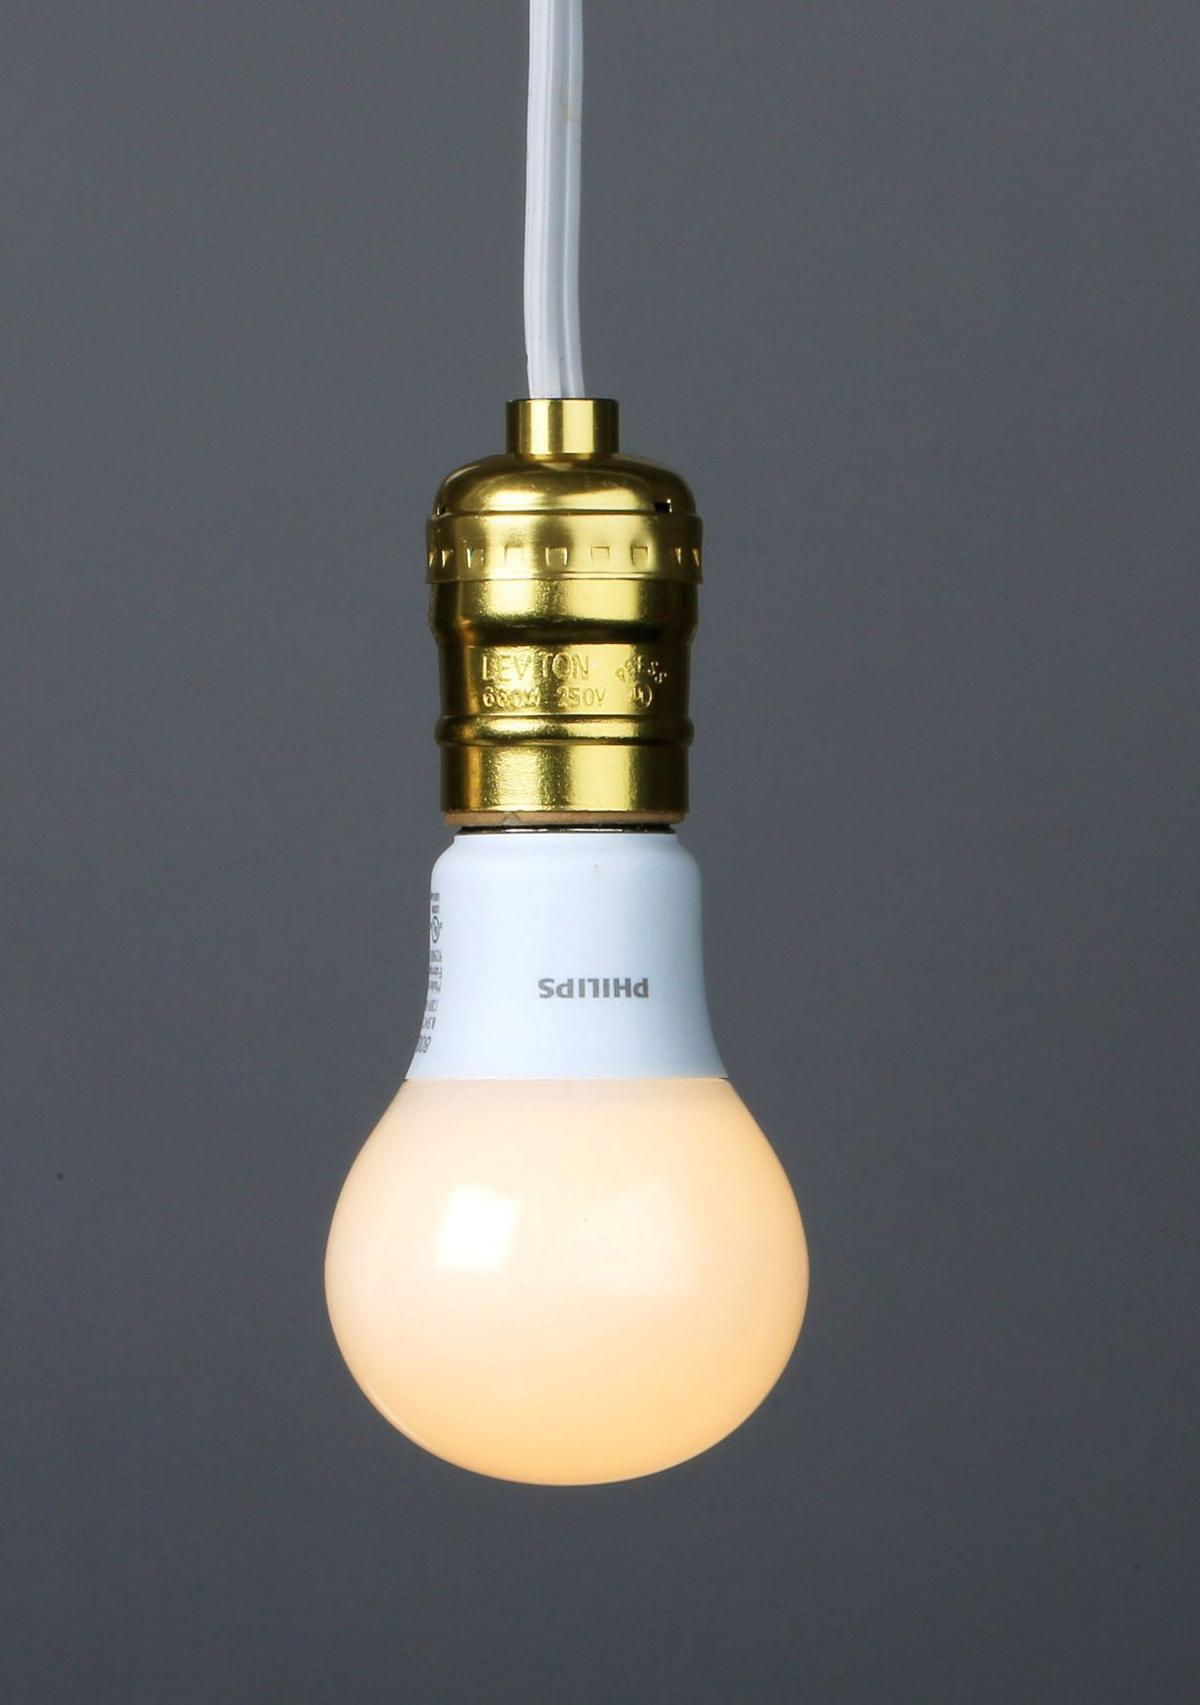 Lower-cost LEDs become competitive with CFLs